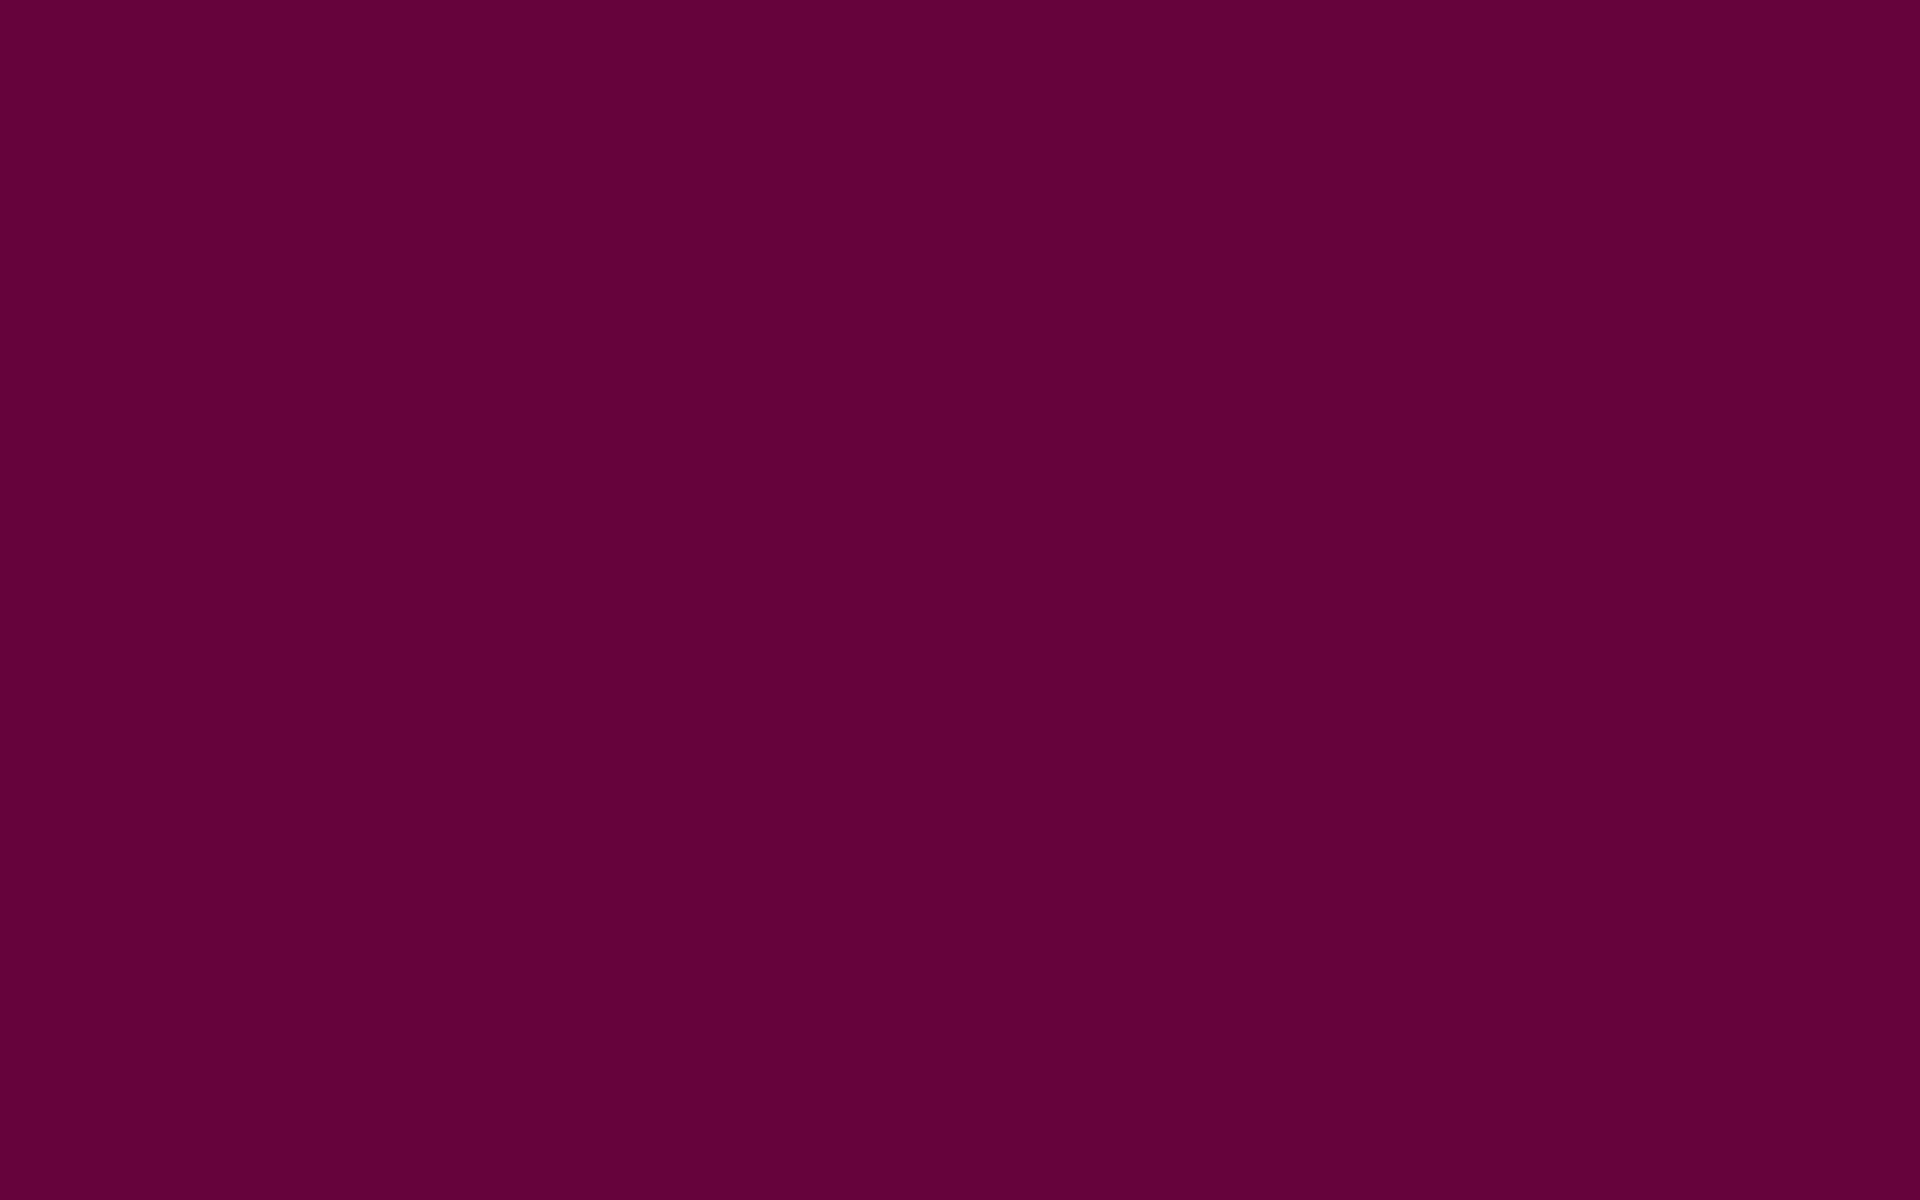 1920x1200 Tyrian Purple Solid Color Background